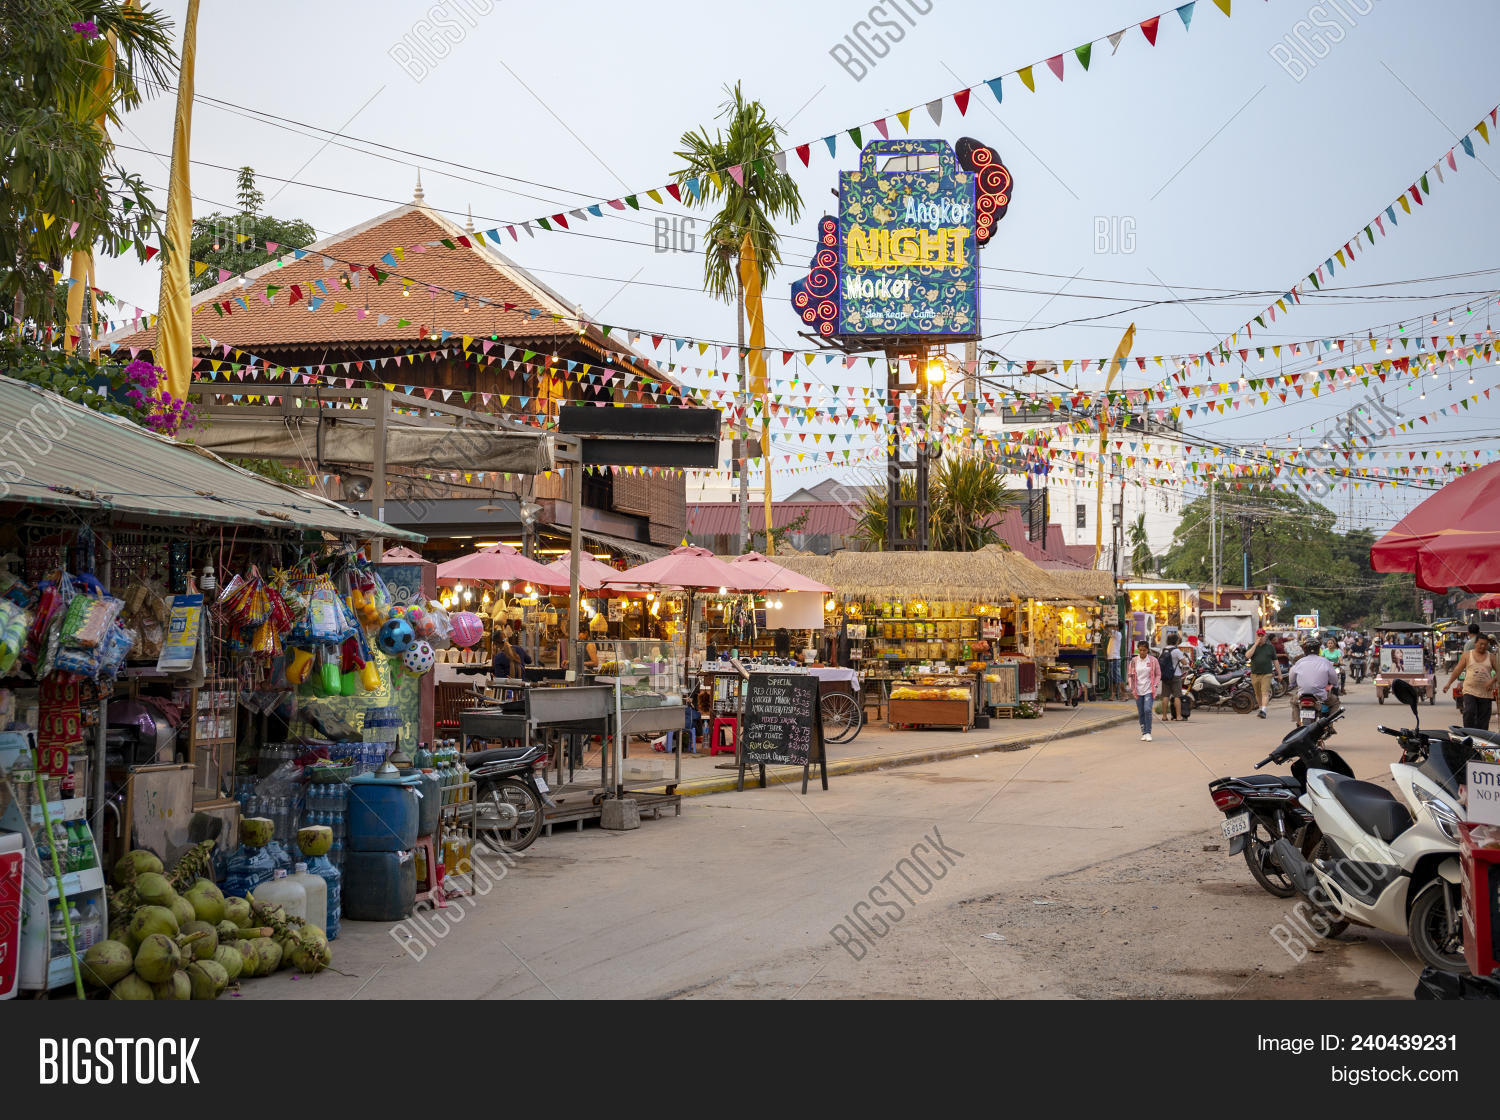 Siem Reap, Cambodia - Image & Photo (Free Trial) | Bigstock